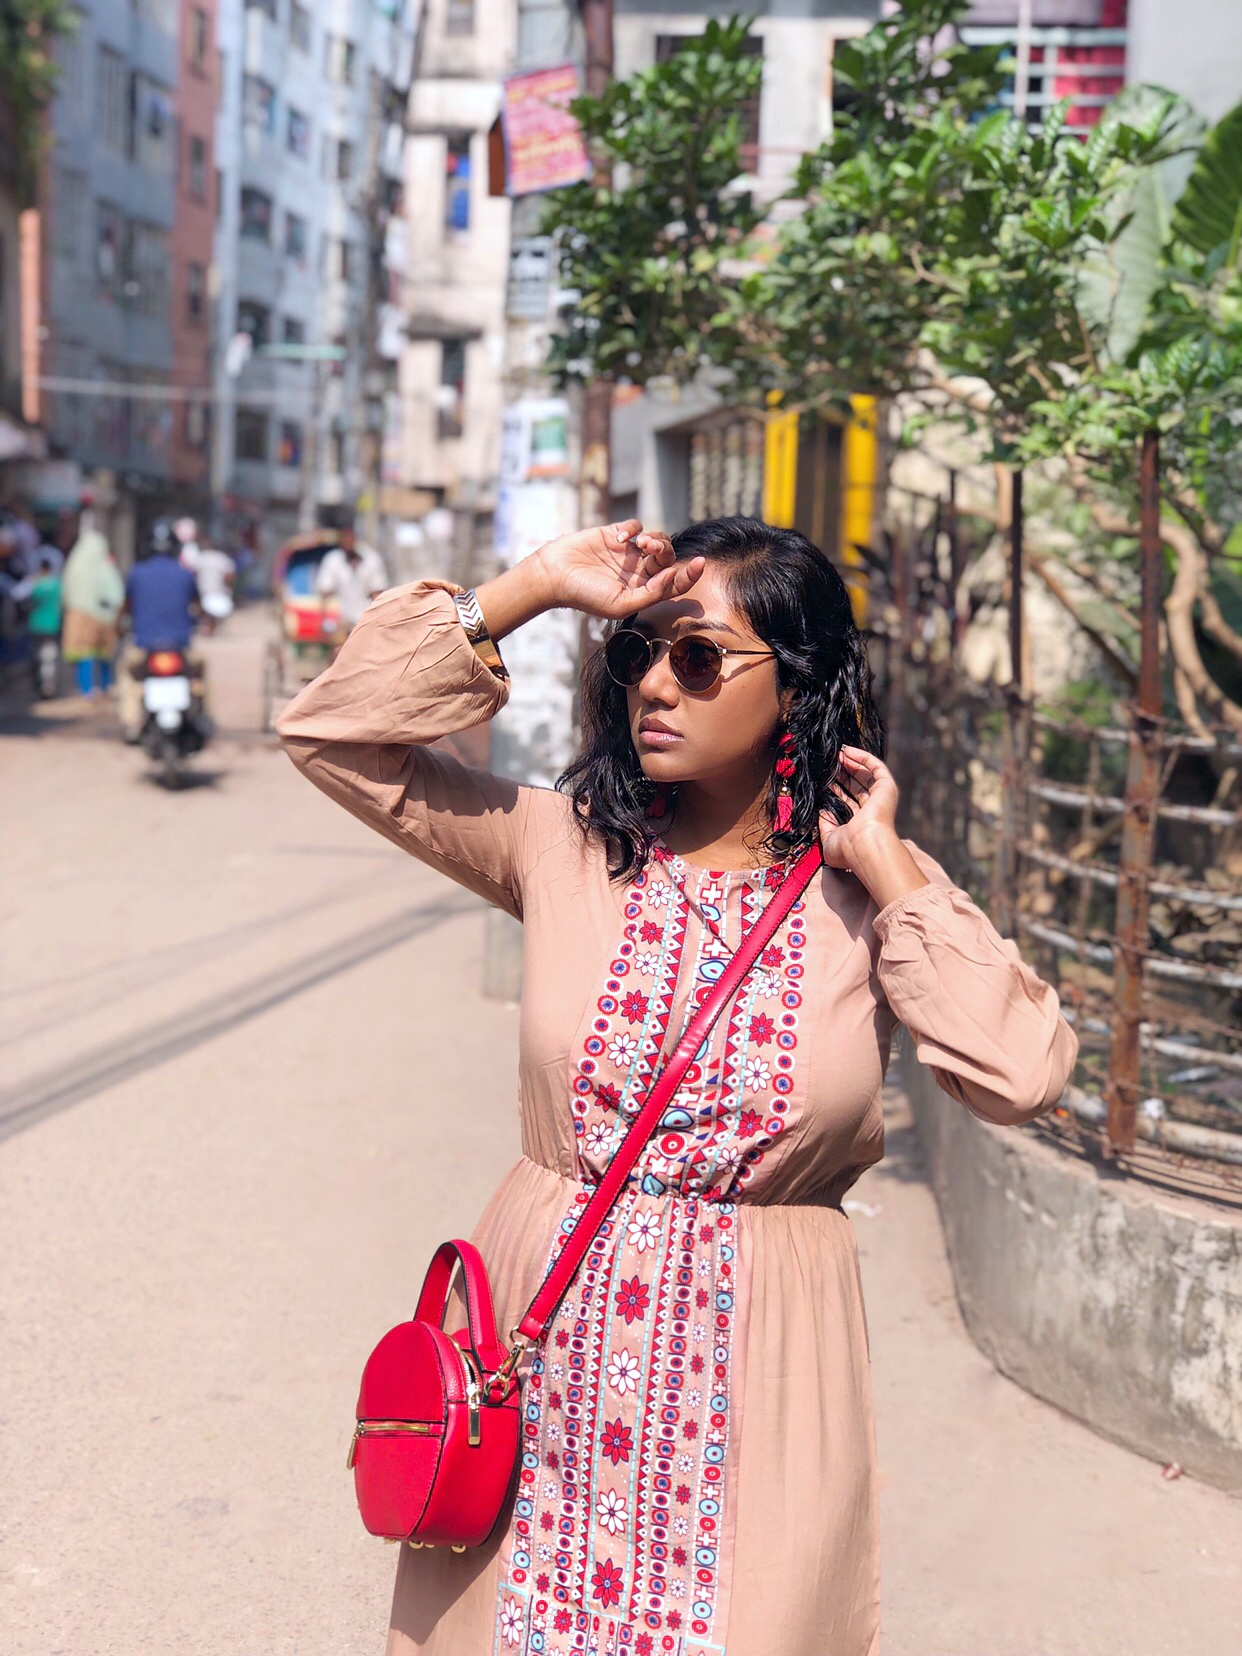 Here's-Why-you-Should-Visit-Bangladesh's-Capital-Dhaka